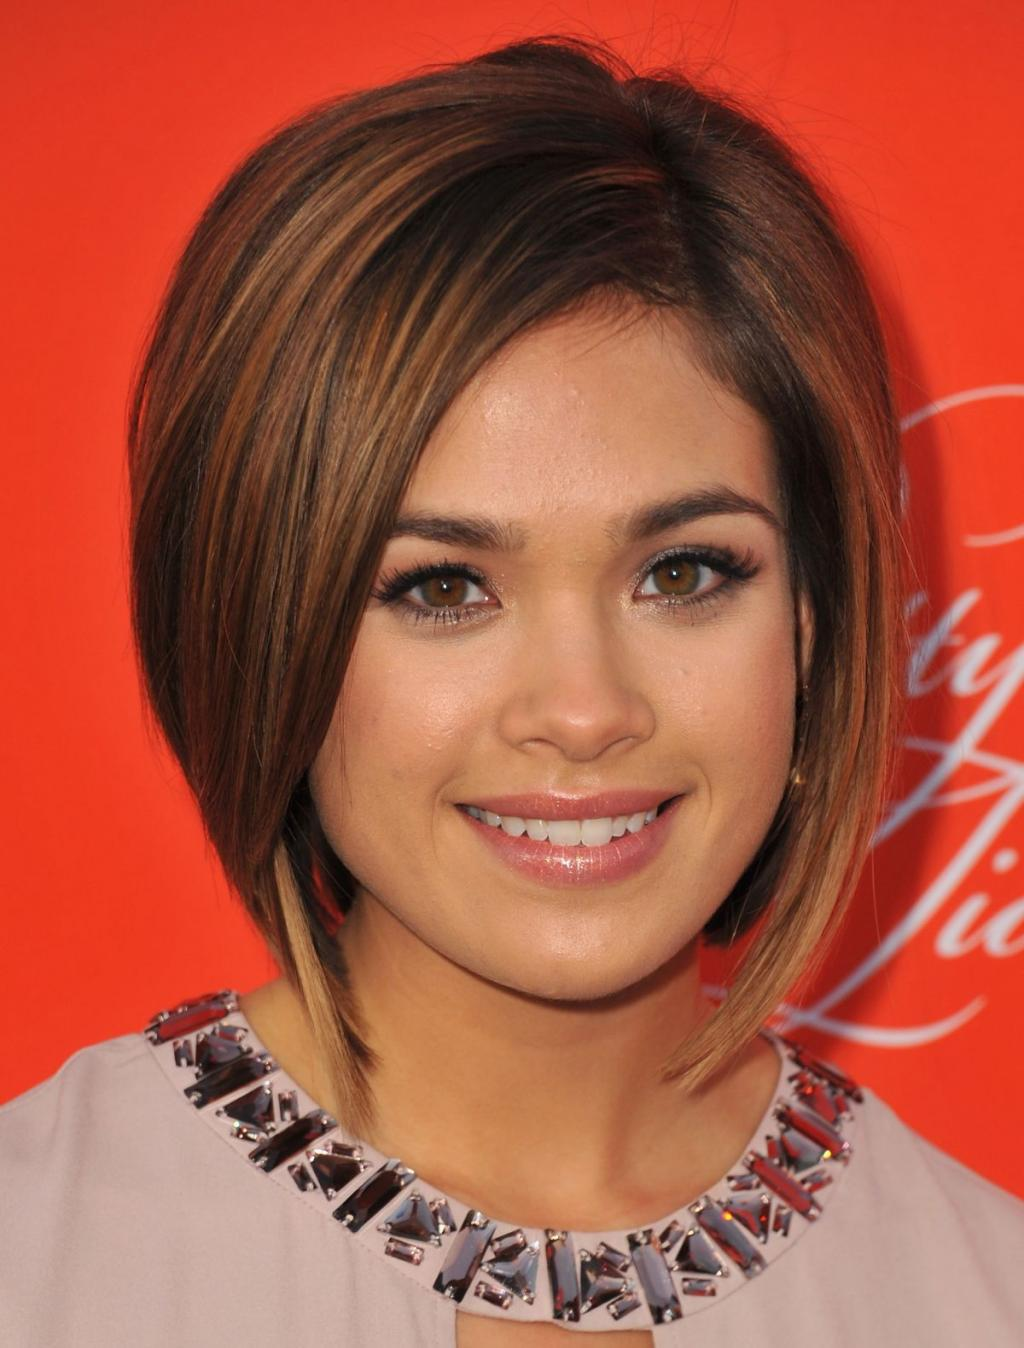 Nicole Gale Anderson - Speakerpedia, Discover & Follow A World Of